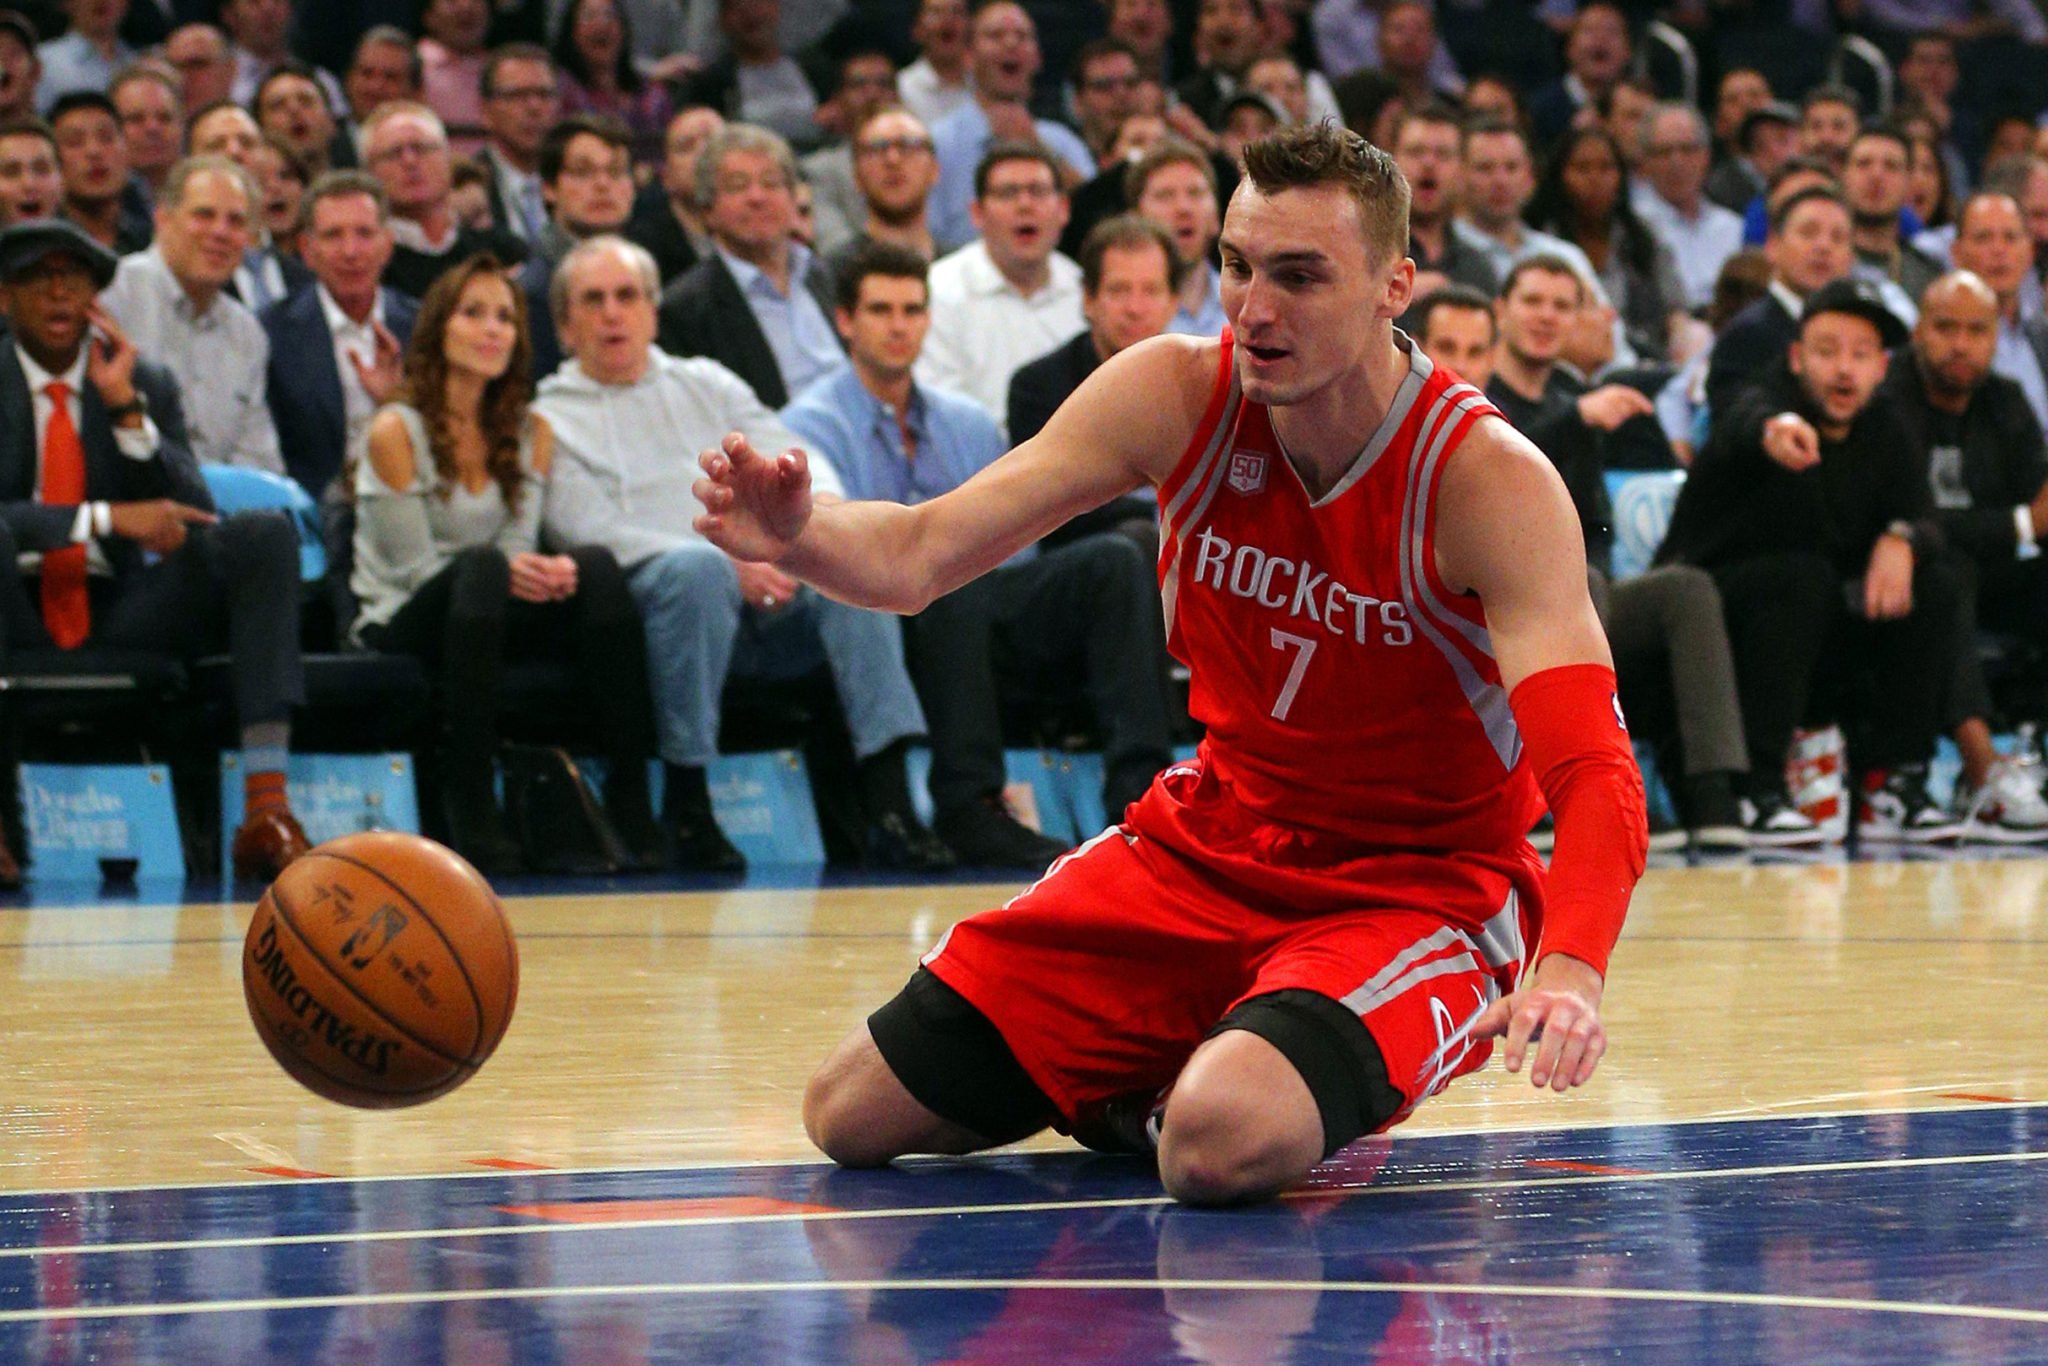 Watch: Sam Dekker Hits The Deck In Madison Square Garden